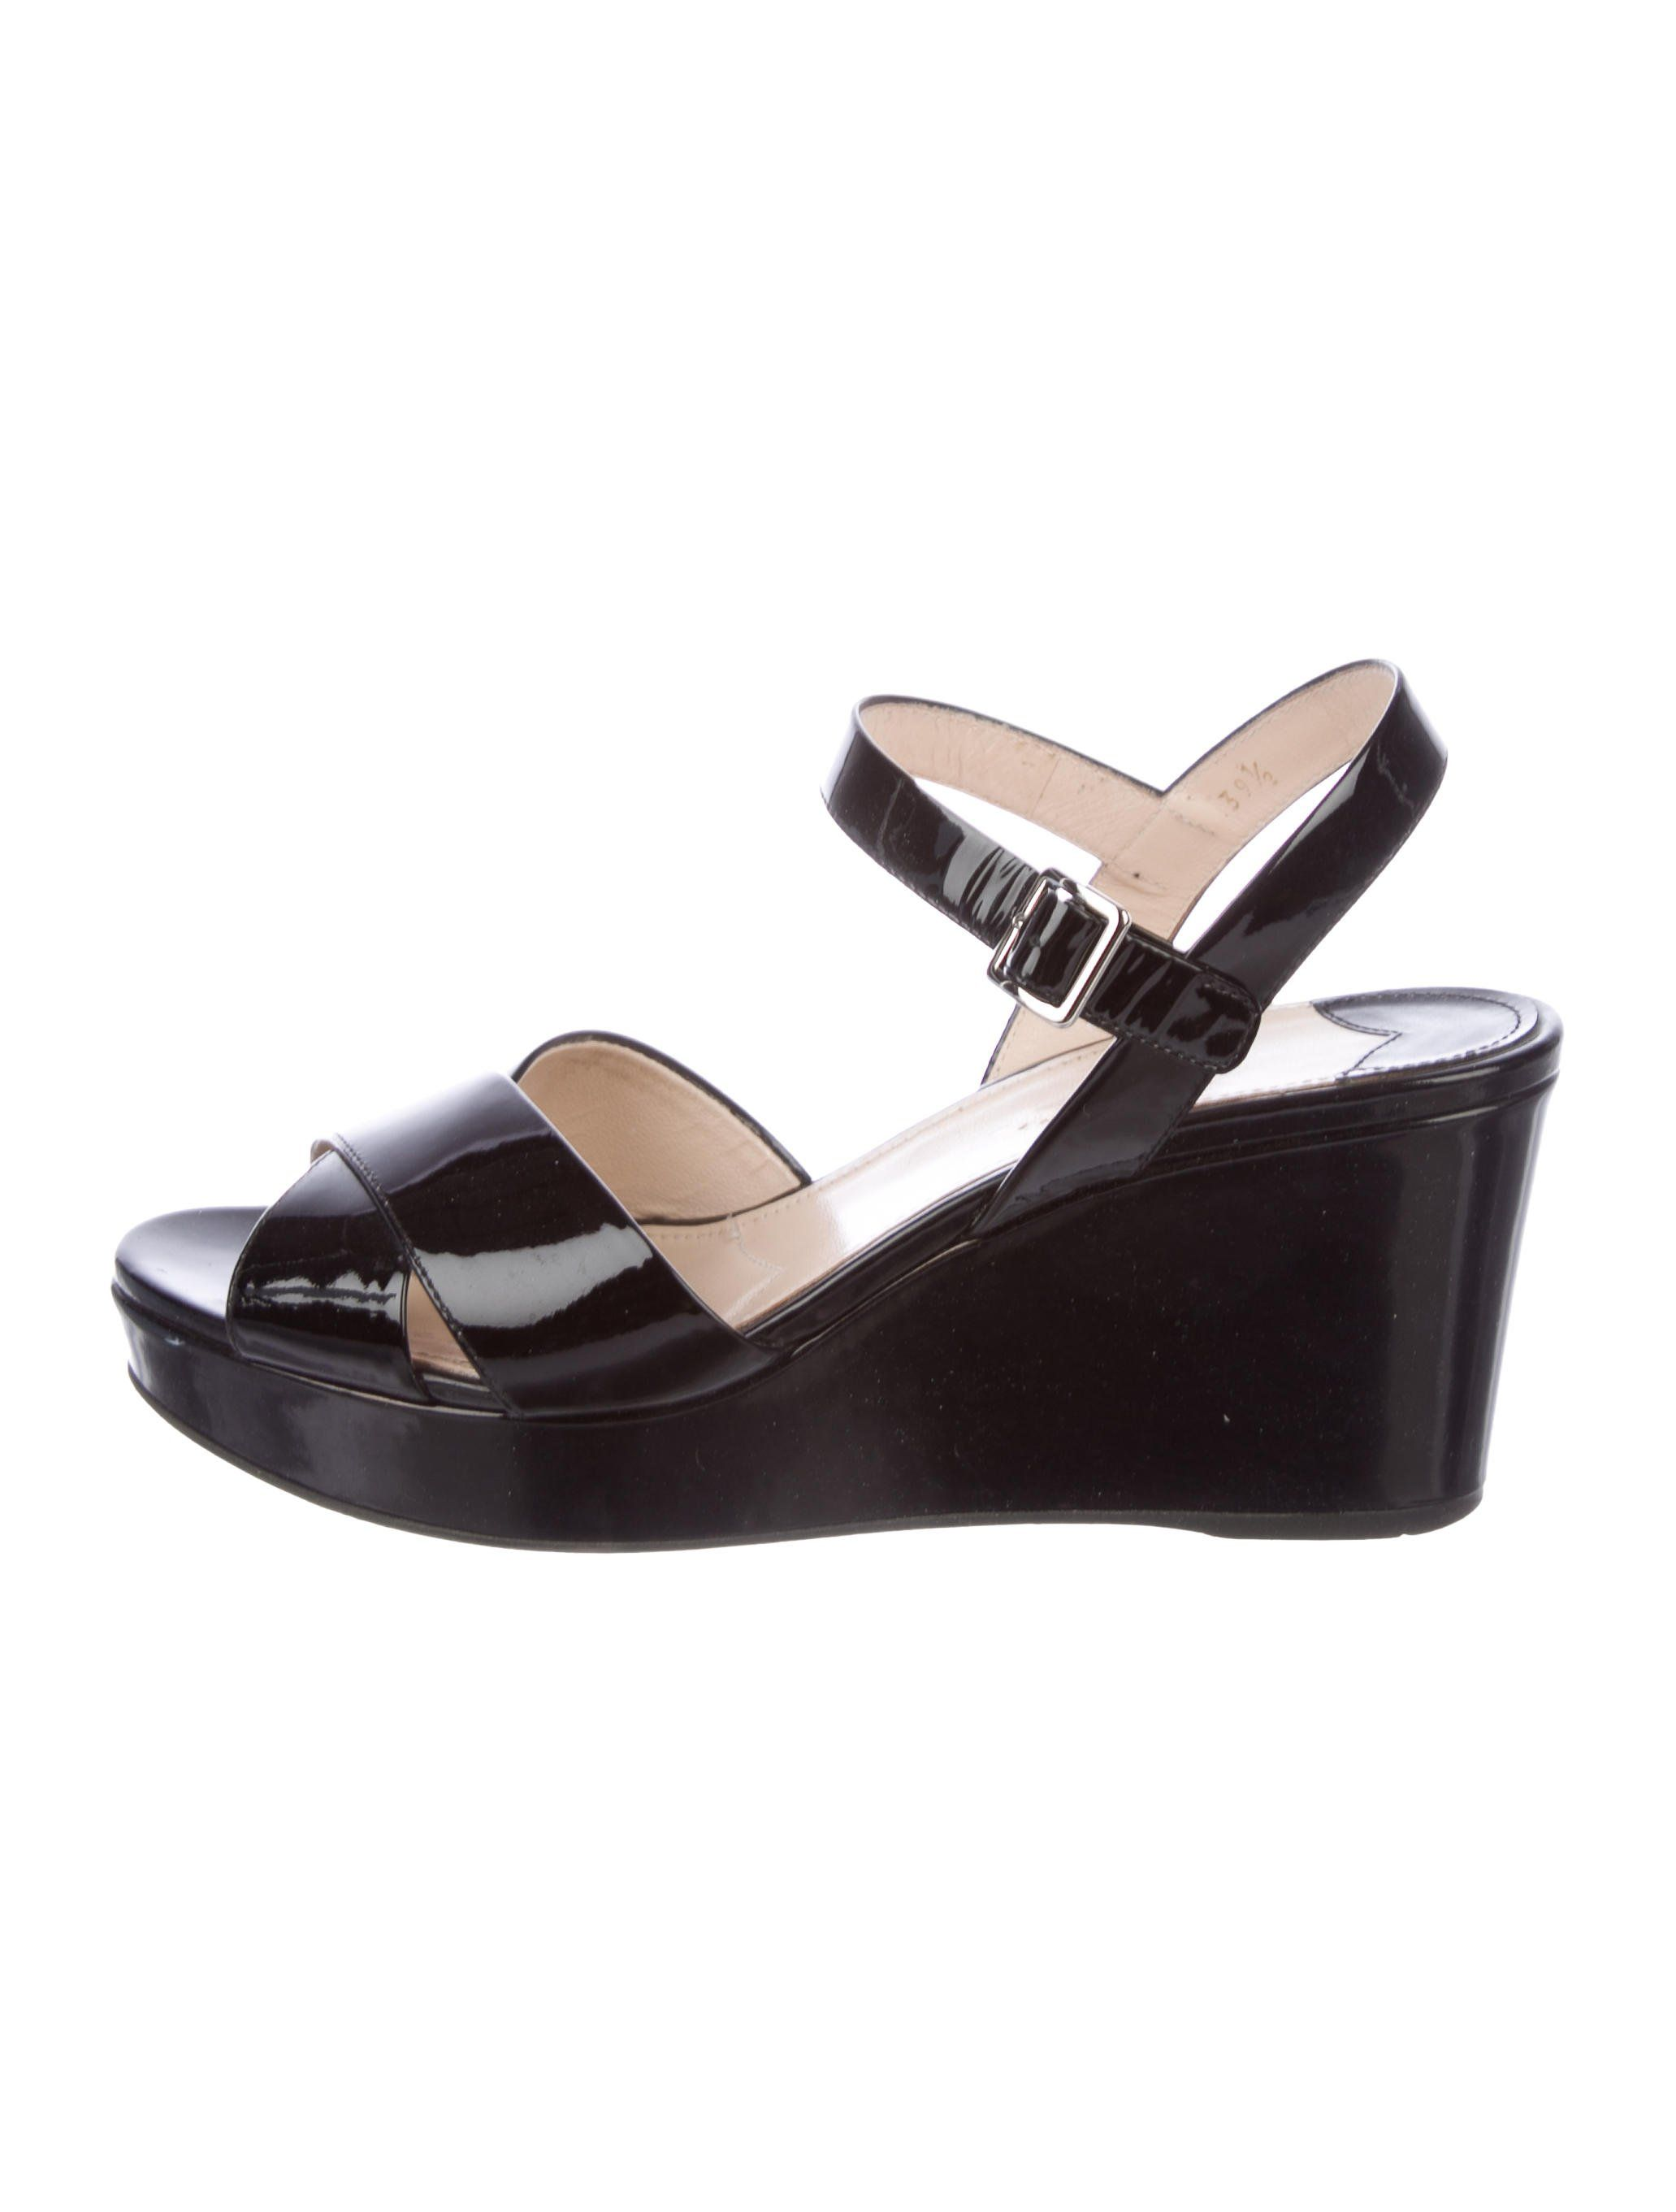 Black Patent Leather Prada Wedge Sandals With Crossover Straps At Tops Covered Heels And Buckle Closures At Wedge Sandals Patent Leather Wedges Patent Leather